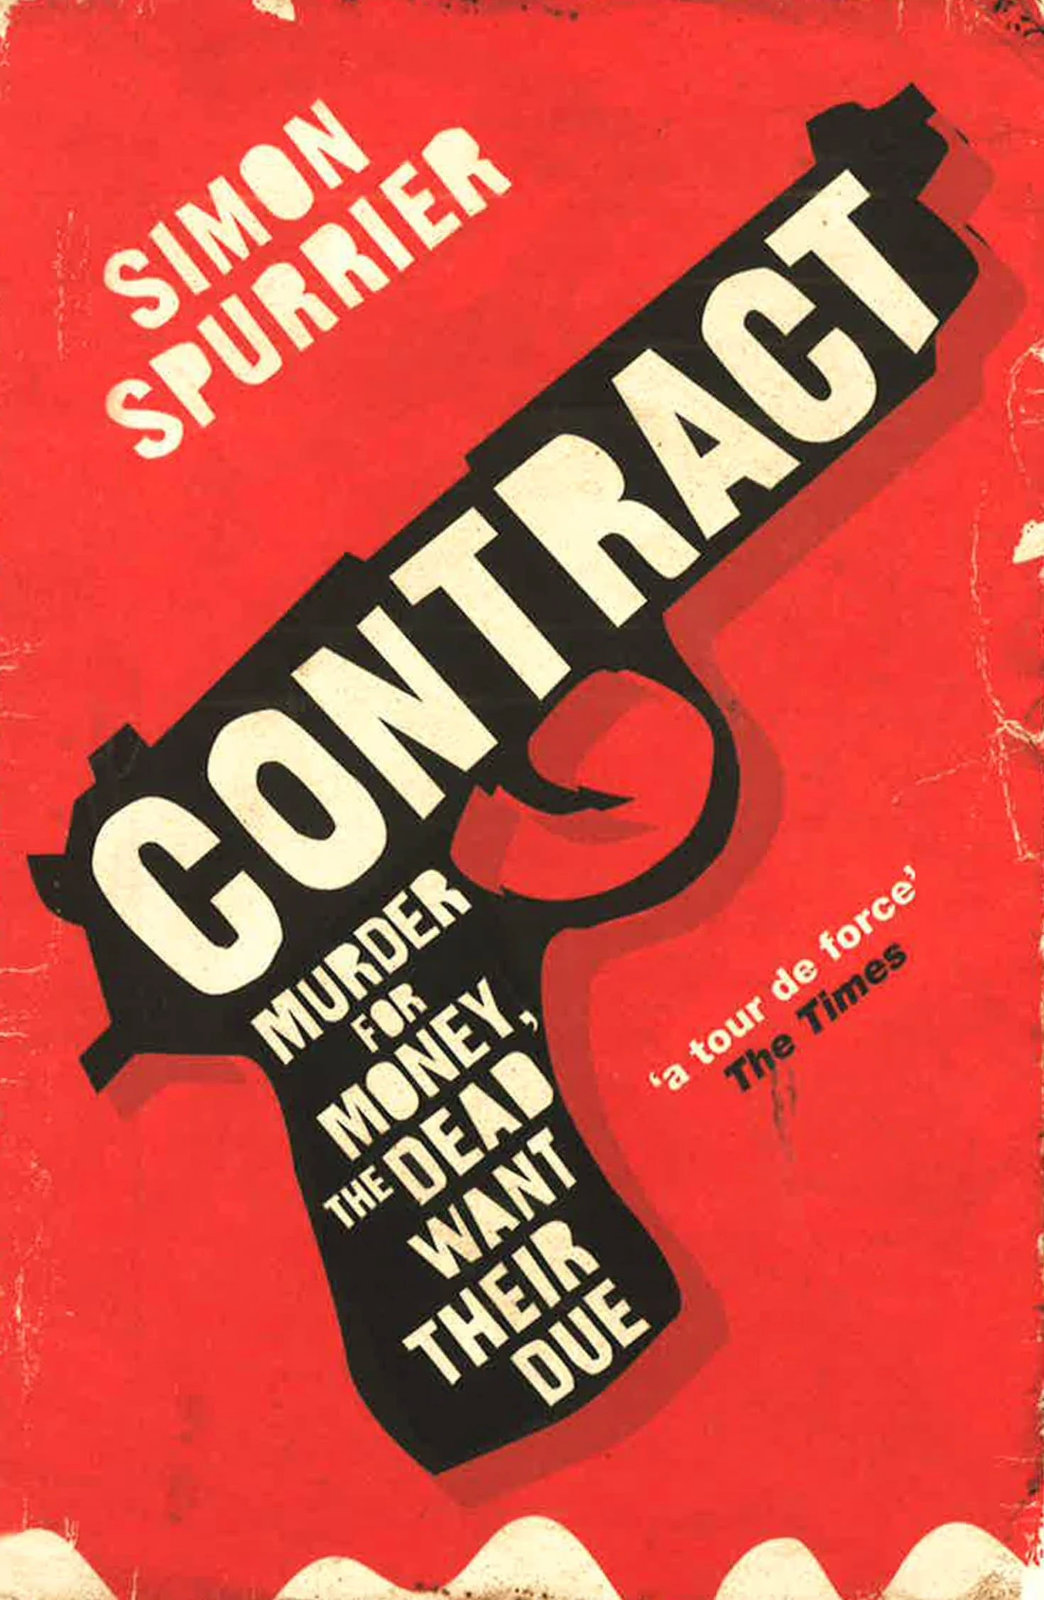 Contract book cover